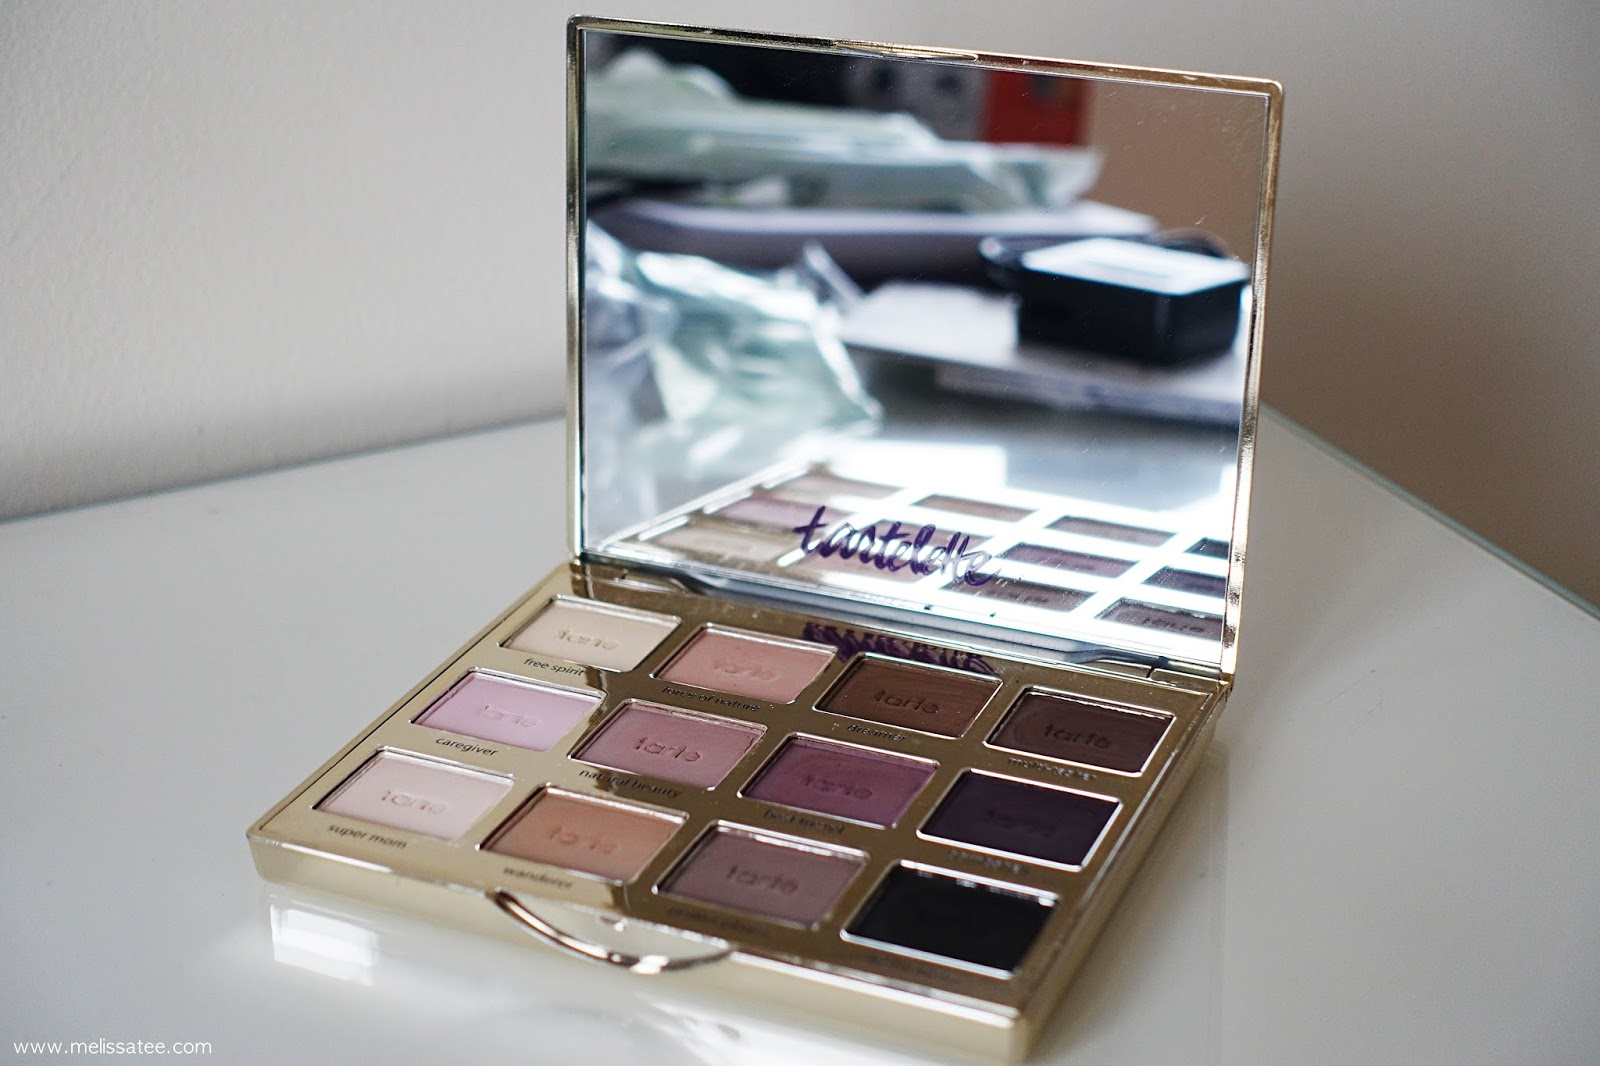 tartelette palette, tartelette review, tartelette palette review, tarte palette, tartelette review and swatches, tartelette swatches, tarte eyeshadow palette, tarte tartelette amazonian clay matte palette review